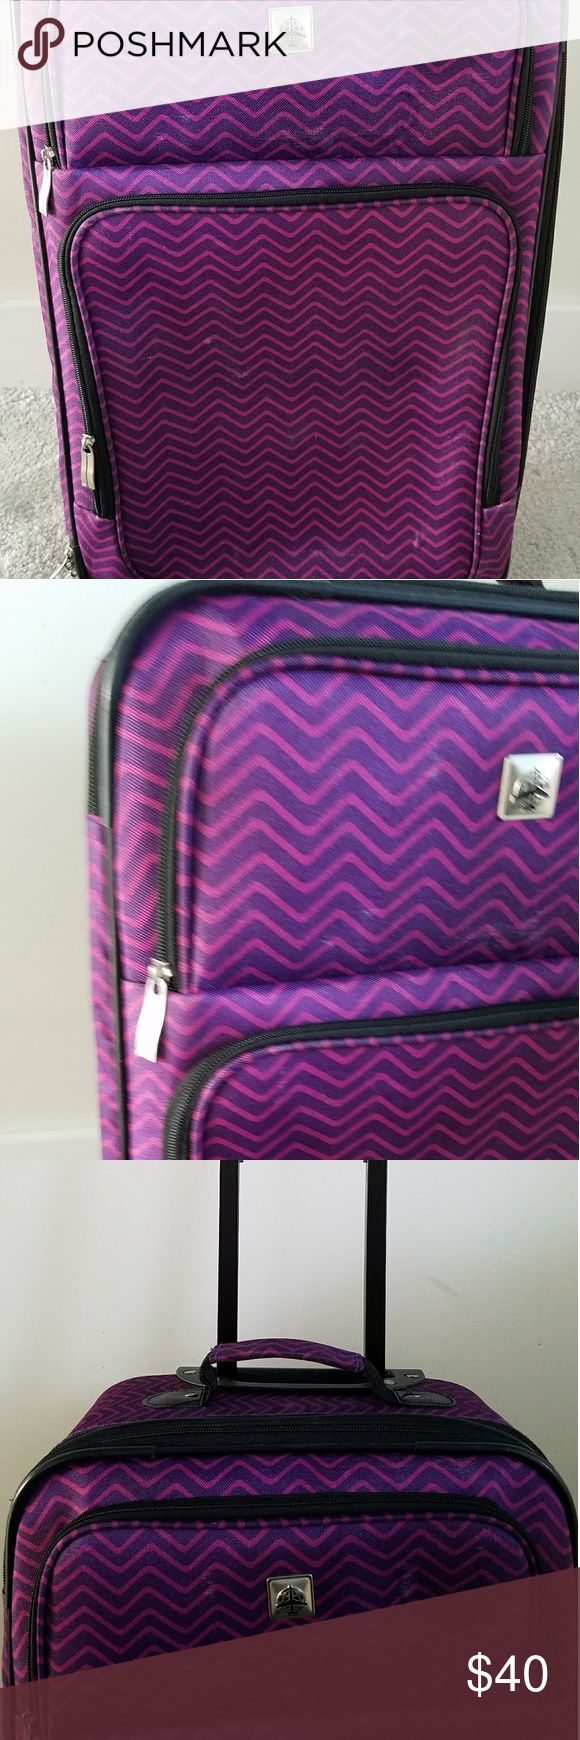 Great condition suitcase travel set Great condition only used twice.  Set includes roller suitcase with small travel bag. Purple color. Selling because I got a new suitcase. Smoke free home. Price negotiable. Bags Travel Bags